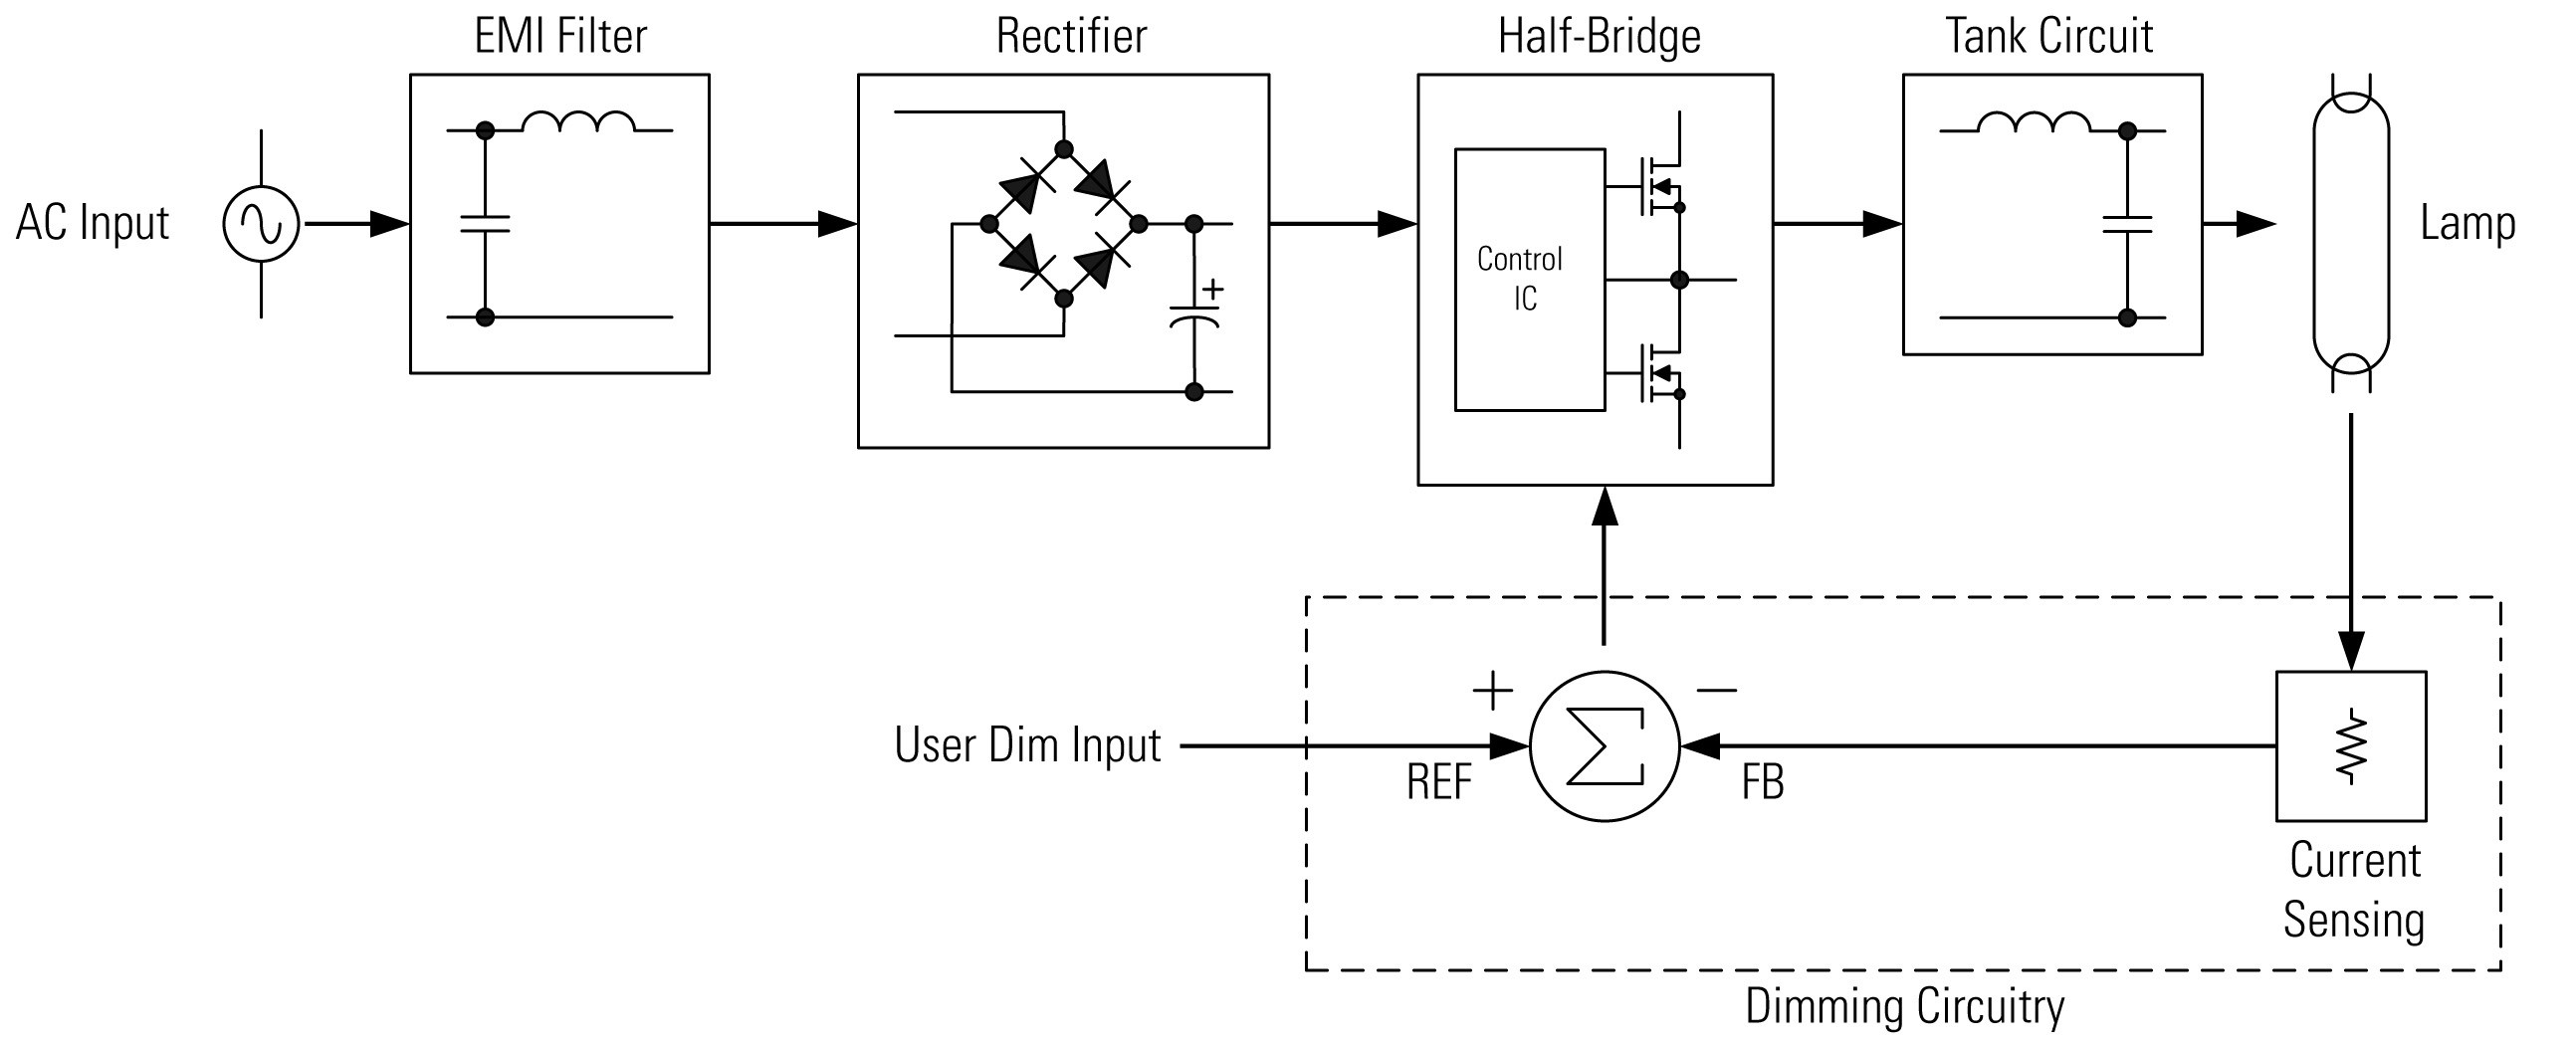 Cfl circuits diagram wiring diagram image full image for gorgeous fluorescent light circuit diagram 105 fluorescent light wiring diagram australia how pact ccuart Choice Image